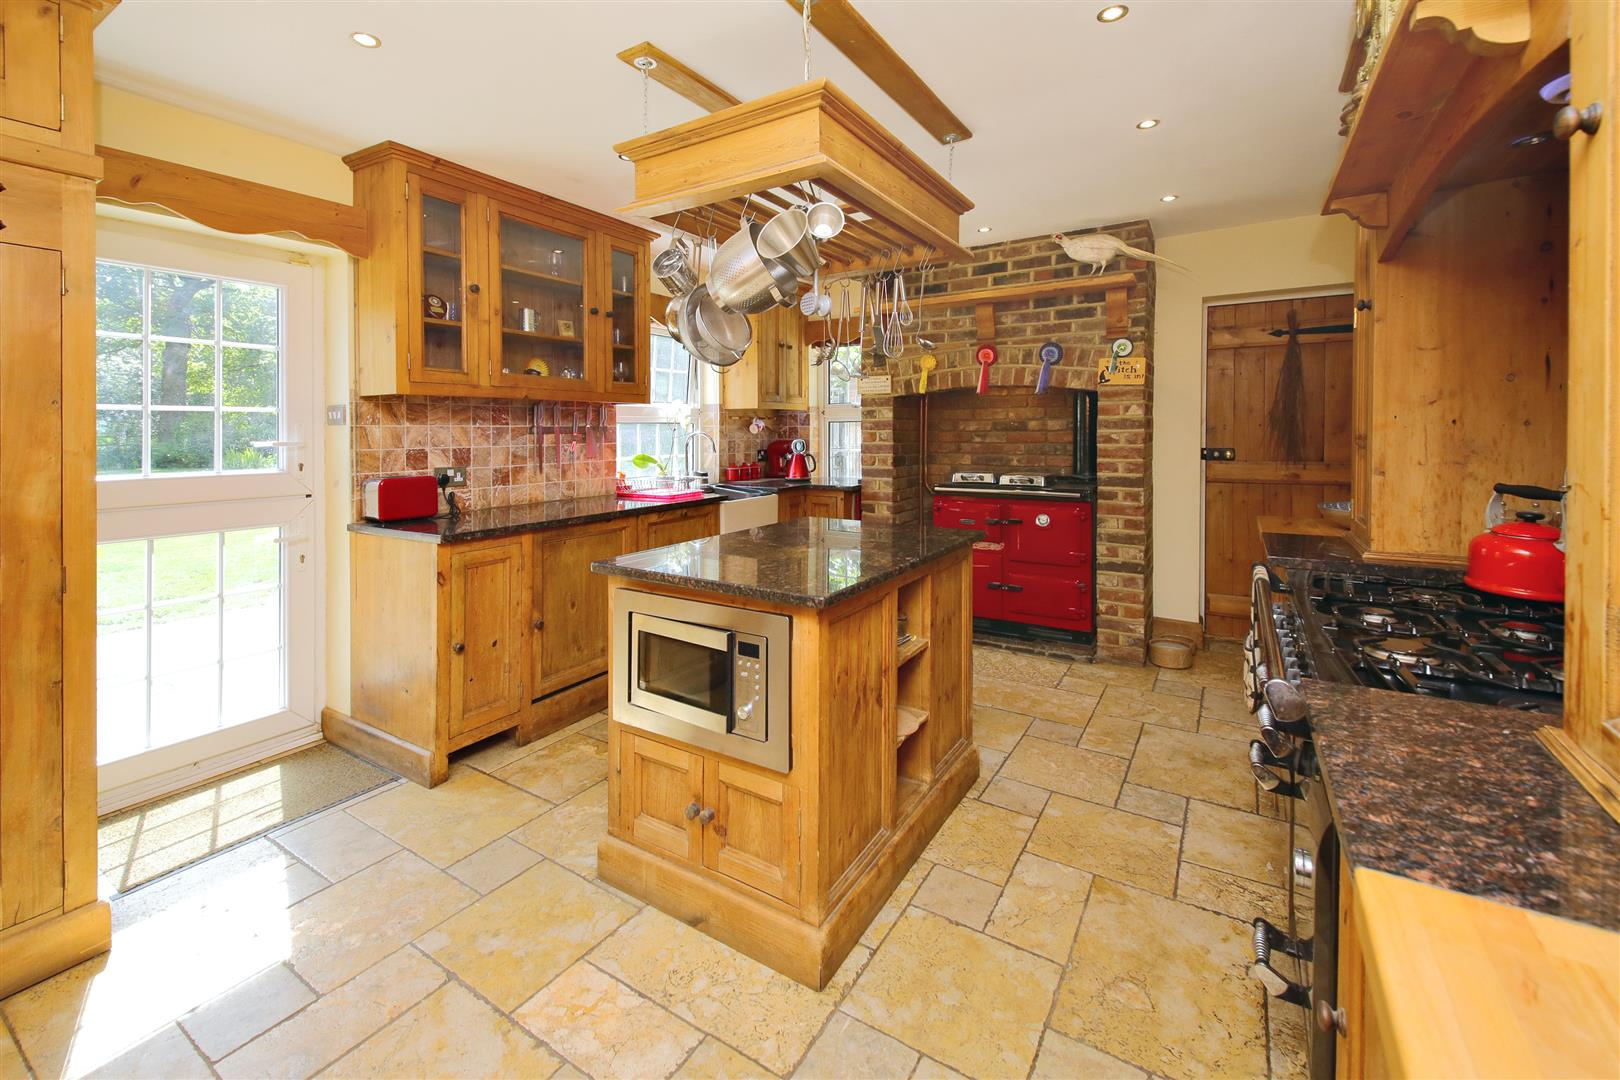 3 bed for sale in Station Road, Bricket Wood - (Property Image 1)